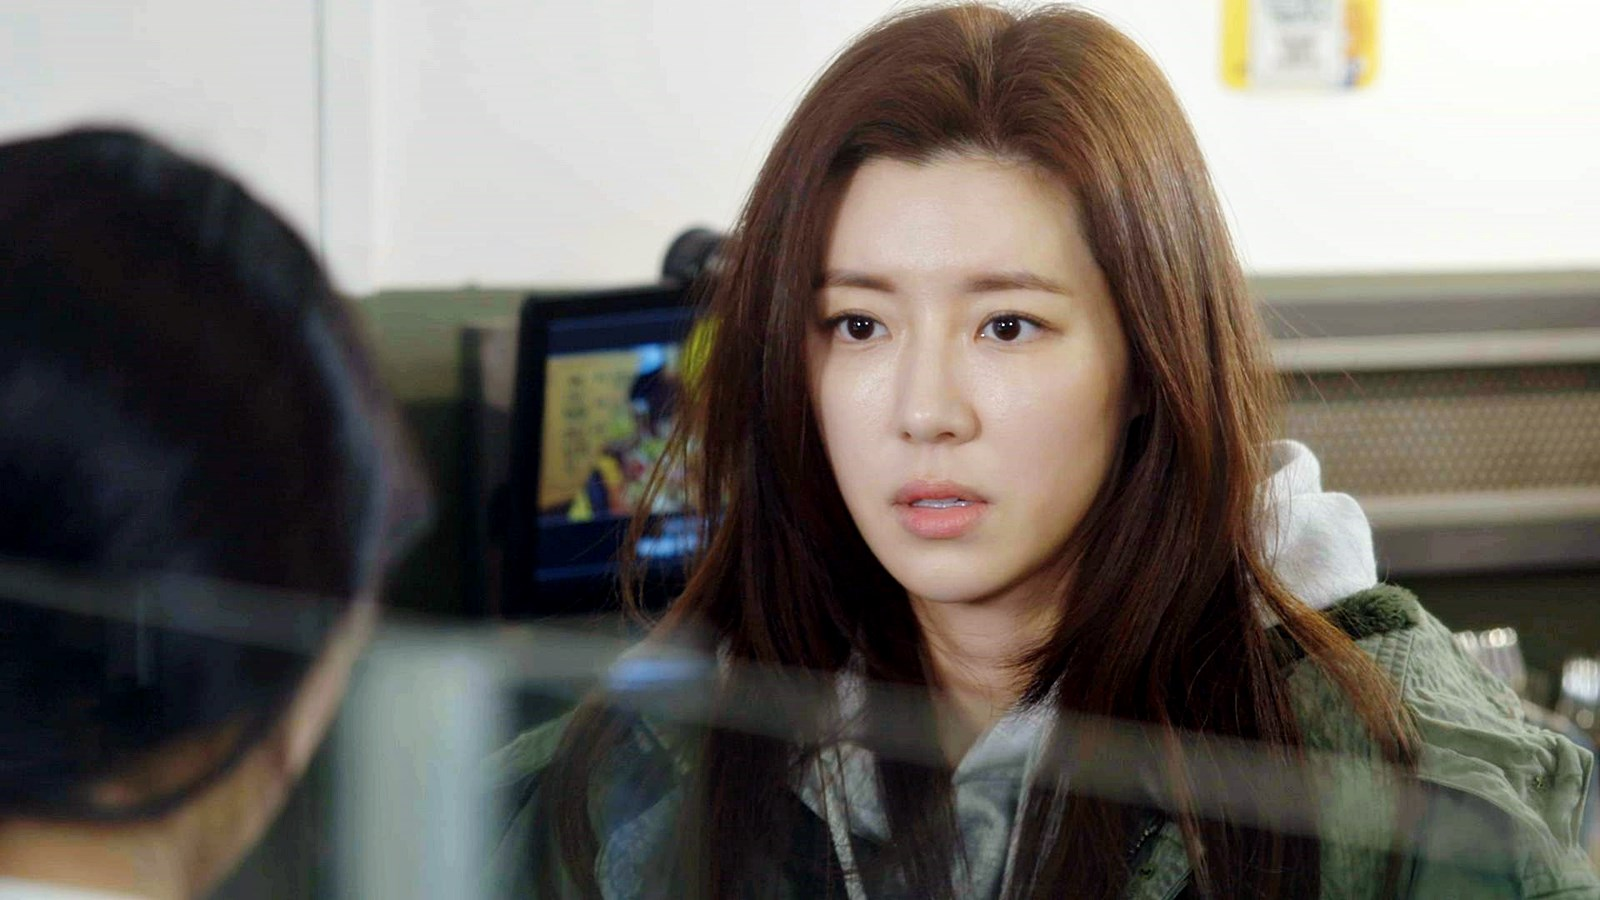 Park Han Byul Hd: Netizens Boycott Park Han Byul's Drama After They Refuse